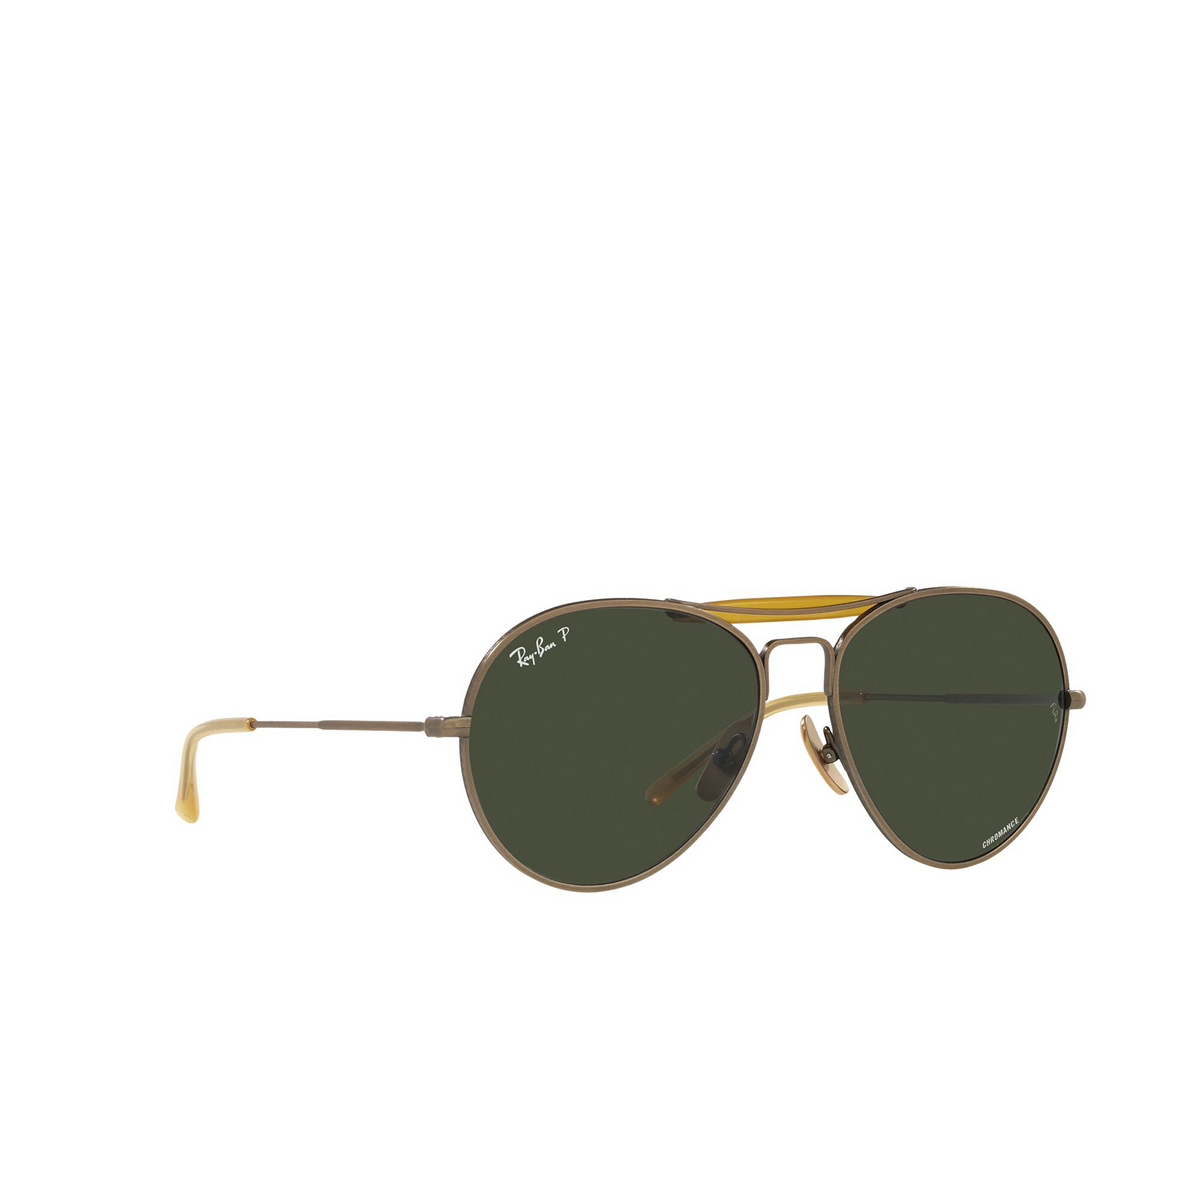 Ray-Ban® Aviator Sunglasses: RB8063 color Demi Gloss Antique Gold 9207P1 - three-quarters view.